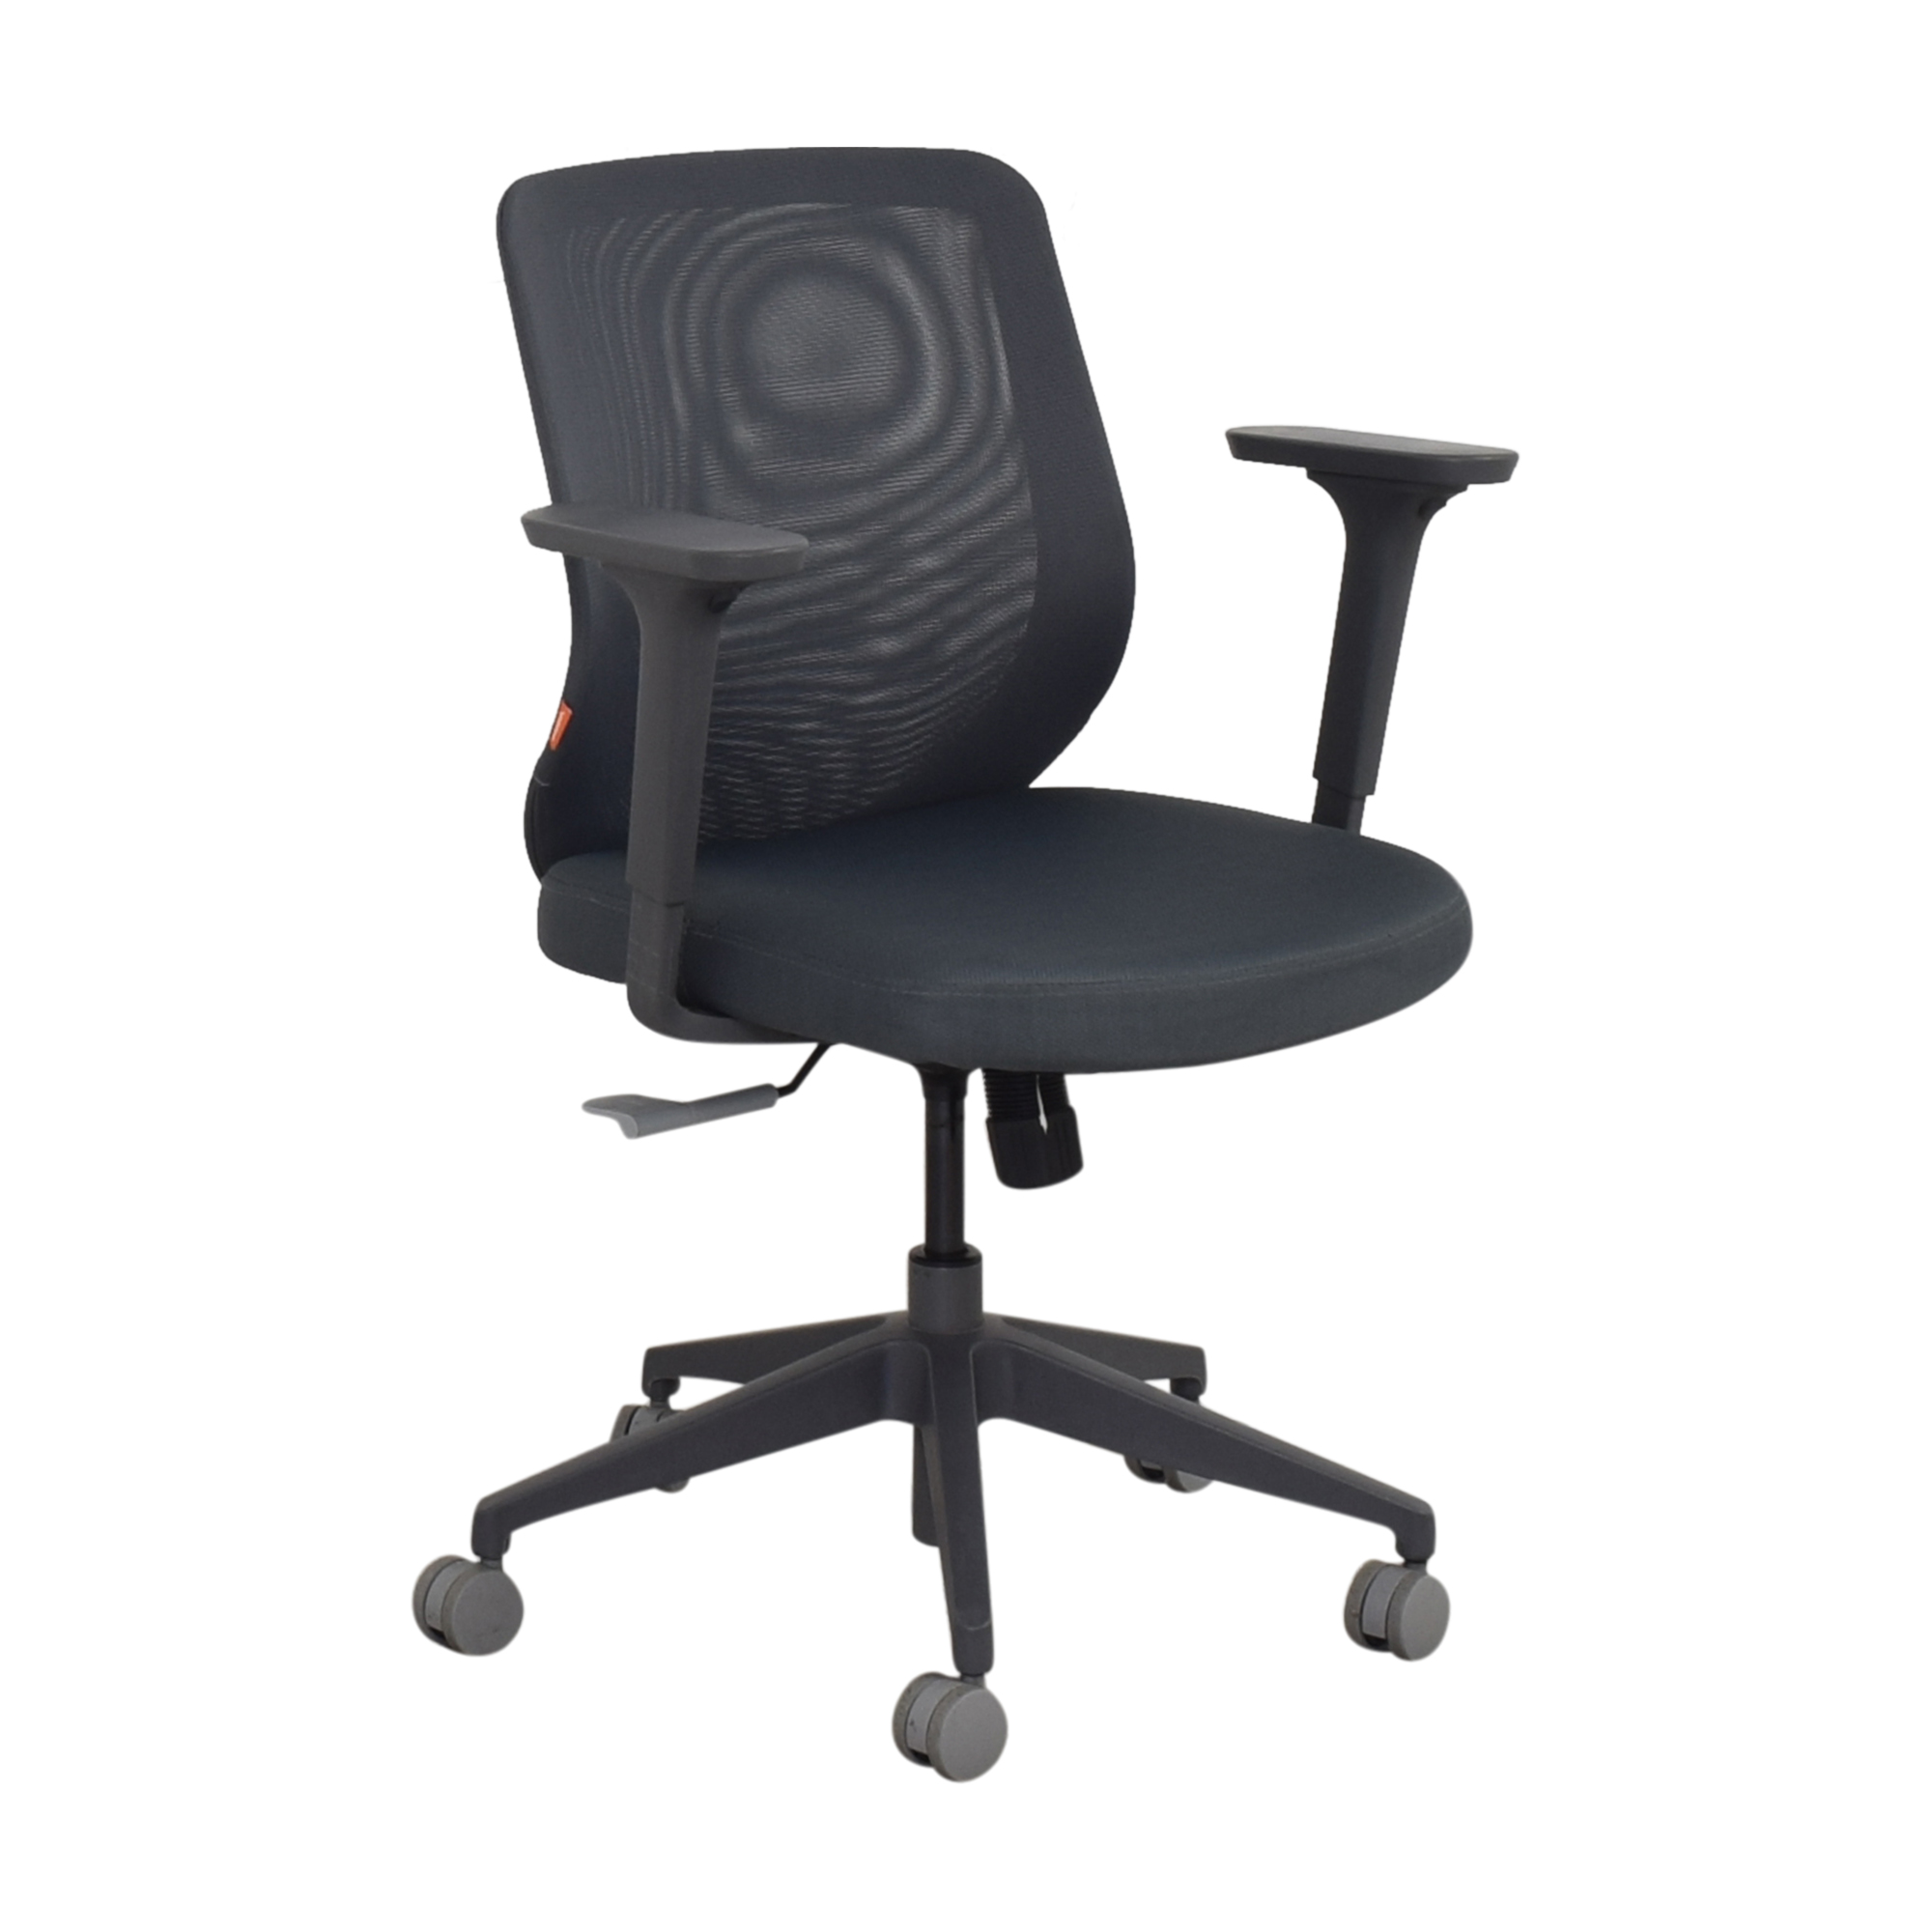 Poppin Poppin Max Task Chair discount